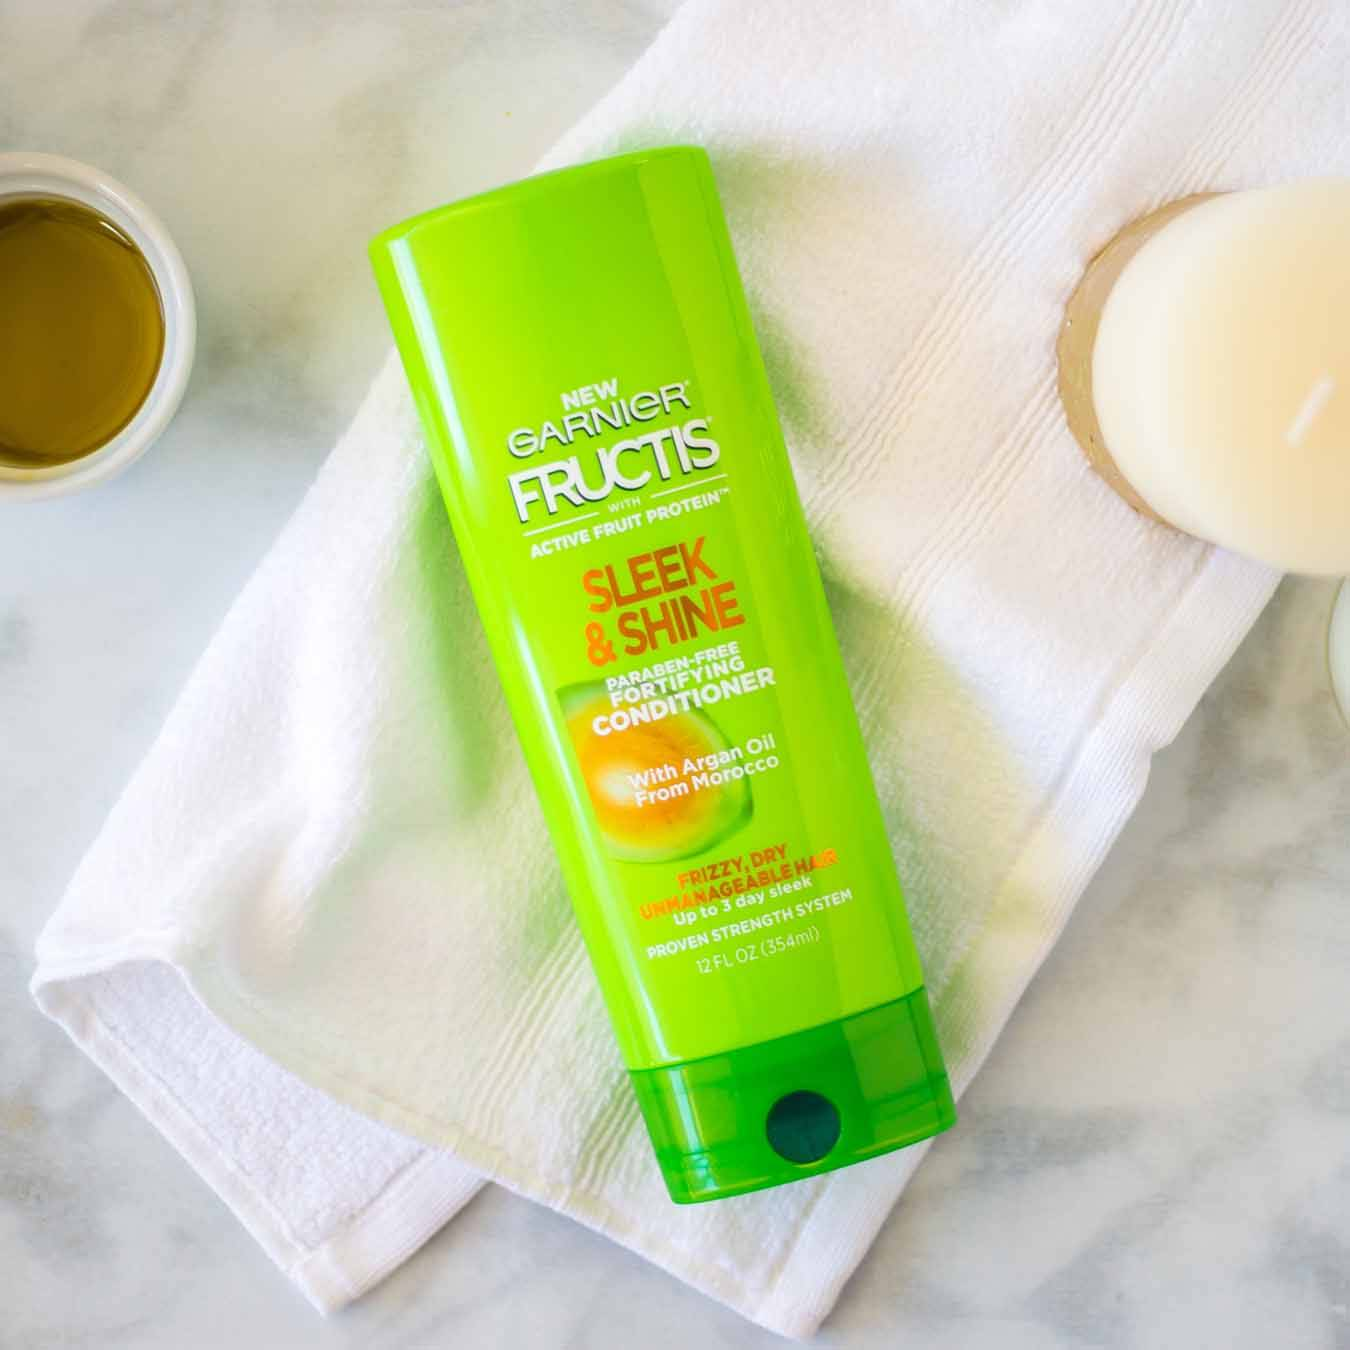 Garnier Fructis Sleek & Shine Conditioner on a white hand towel on white marble next to an unlit white candle and a ramekin of oil.